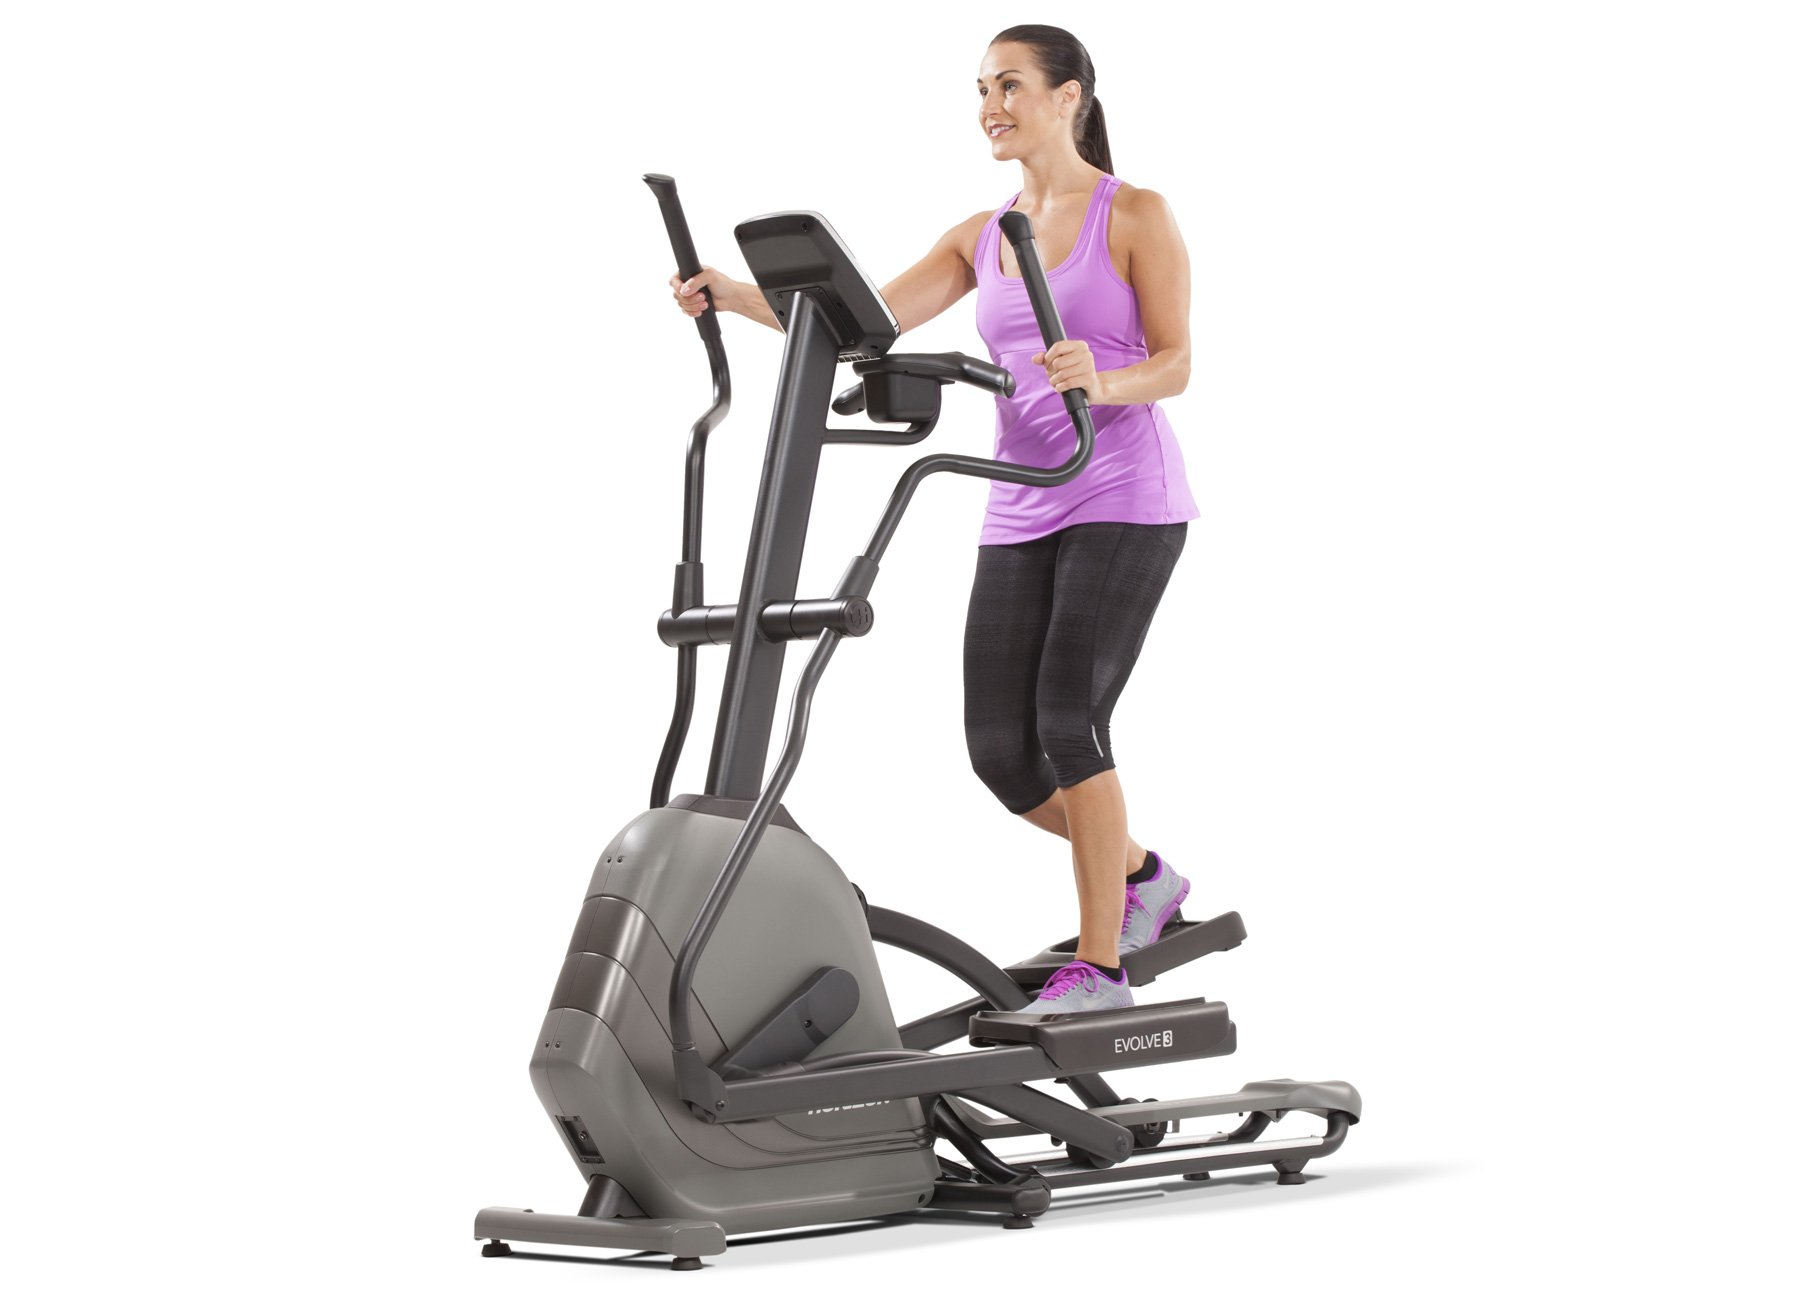 Horizon Fitness Evolve 3 Elliptical Trainer by Horizon Fitness